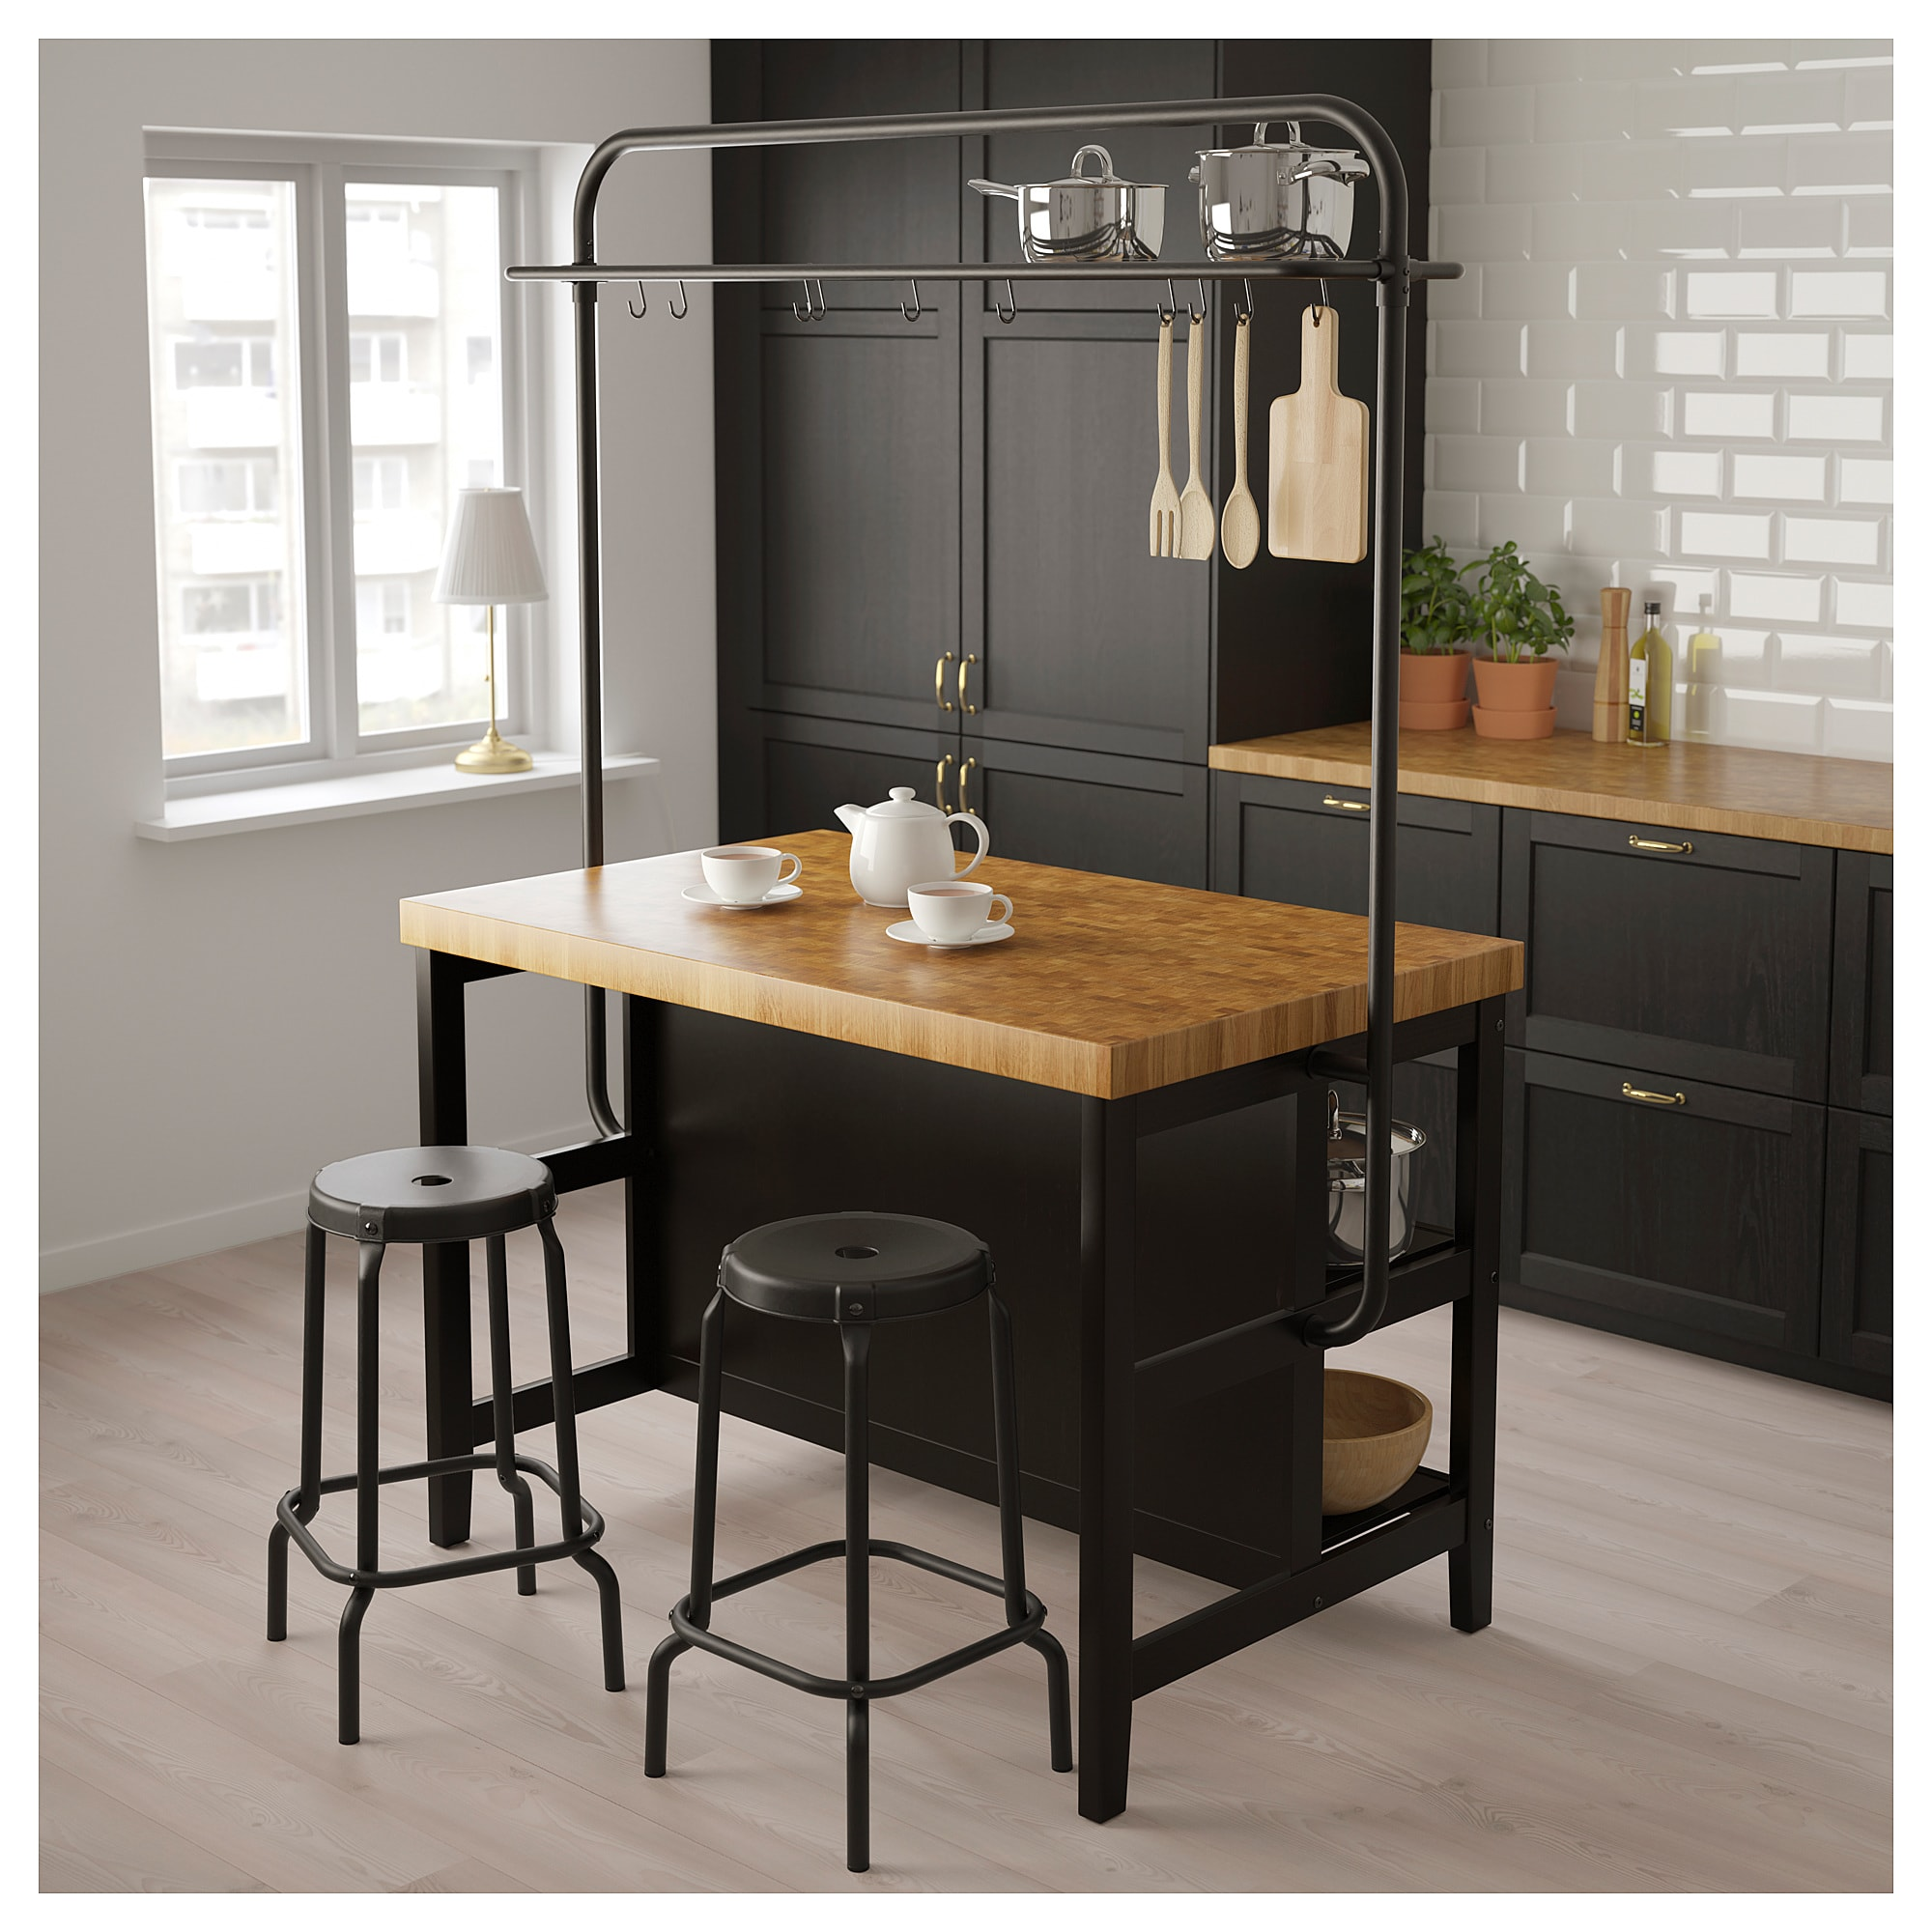 Kitchen Island Stools Ikea: VADHOLMA Kitchen Island With Rack, Black, Oak In 2019